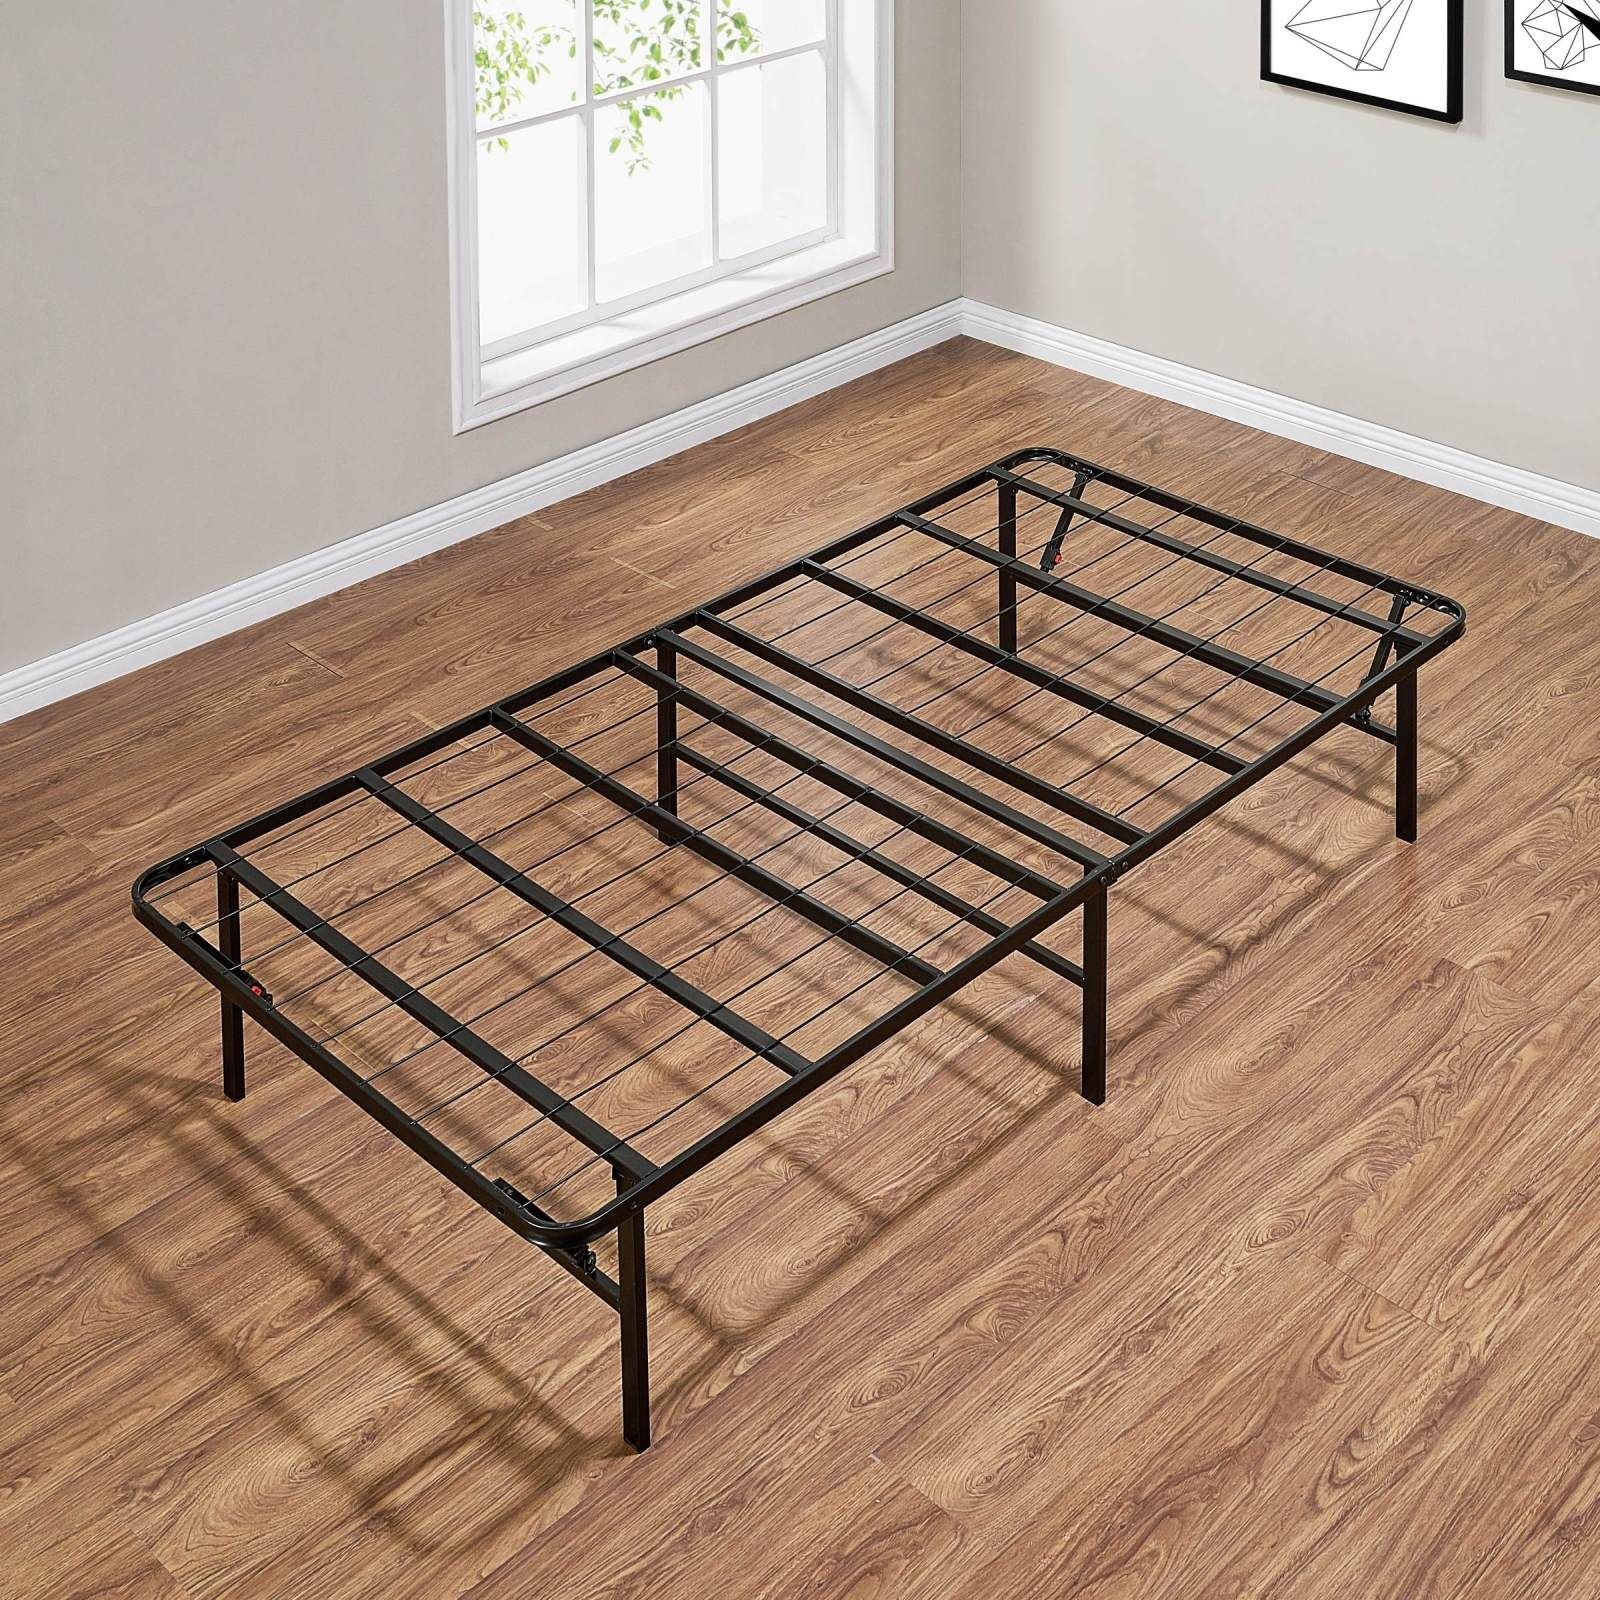 Home In 2020 Steel Bed Frame Steel Bed Bed Frame